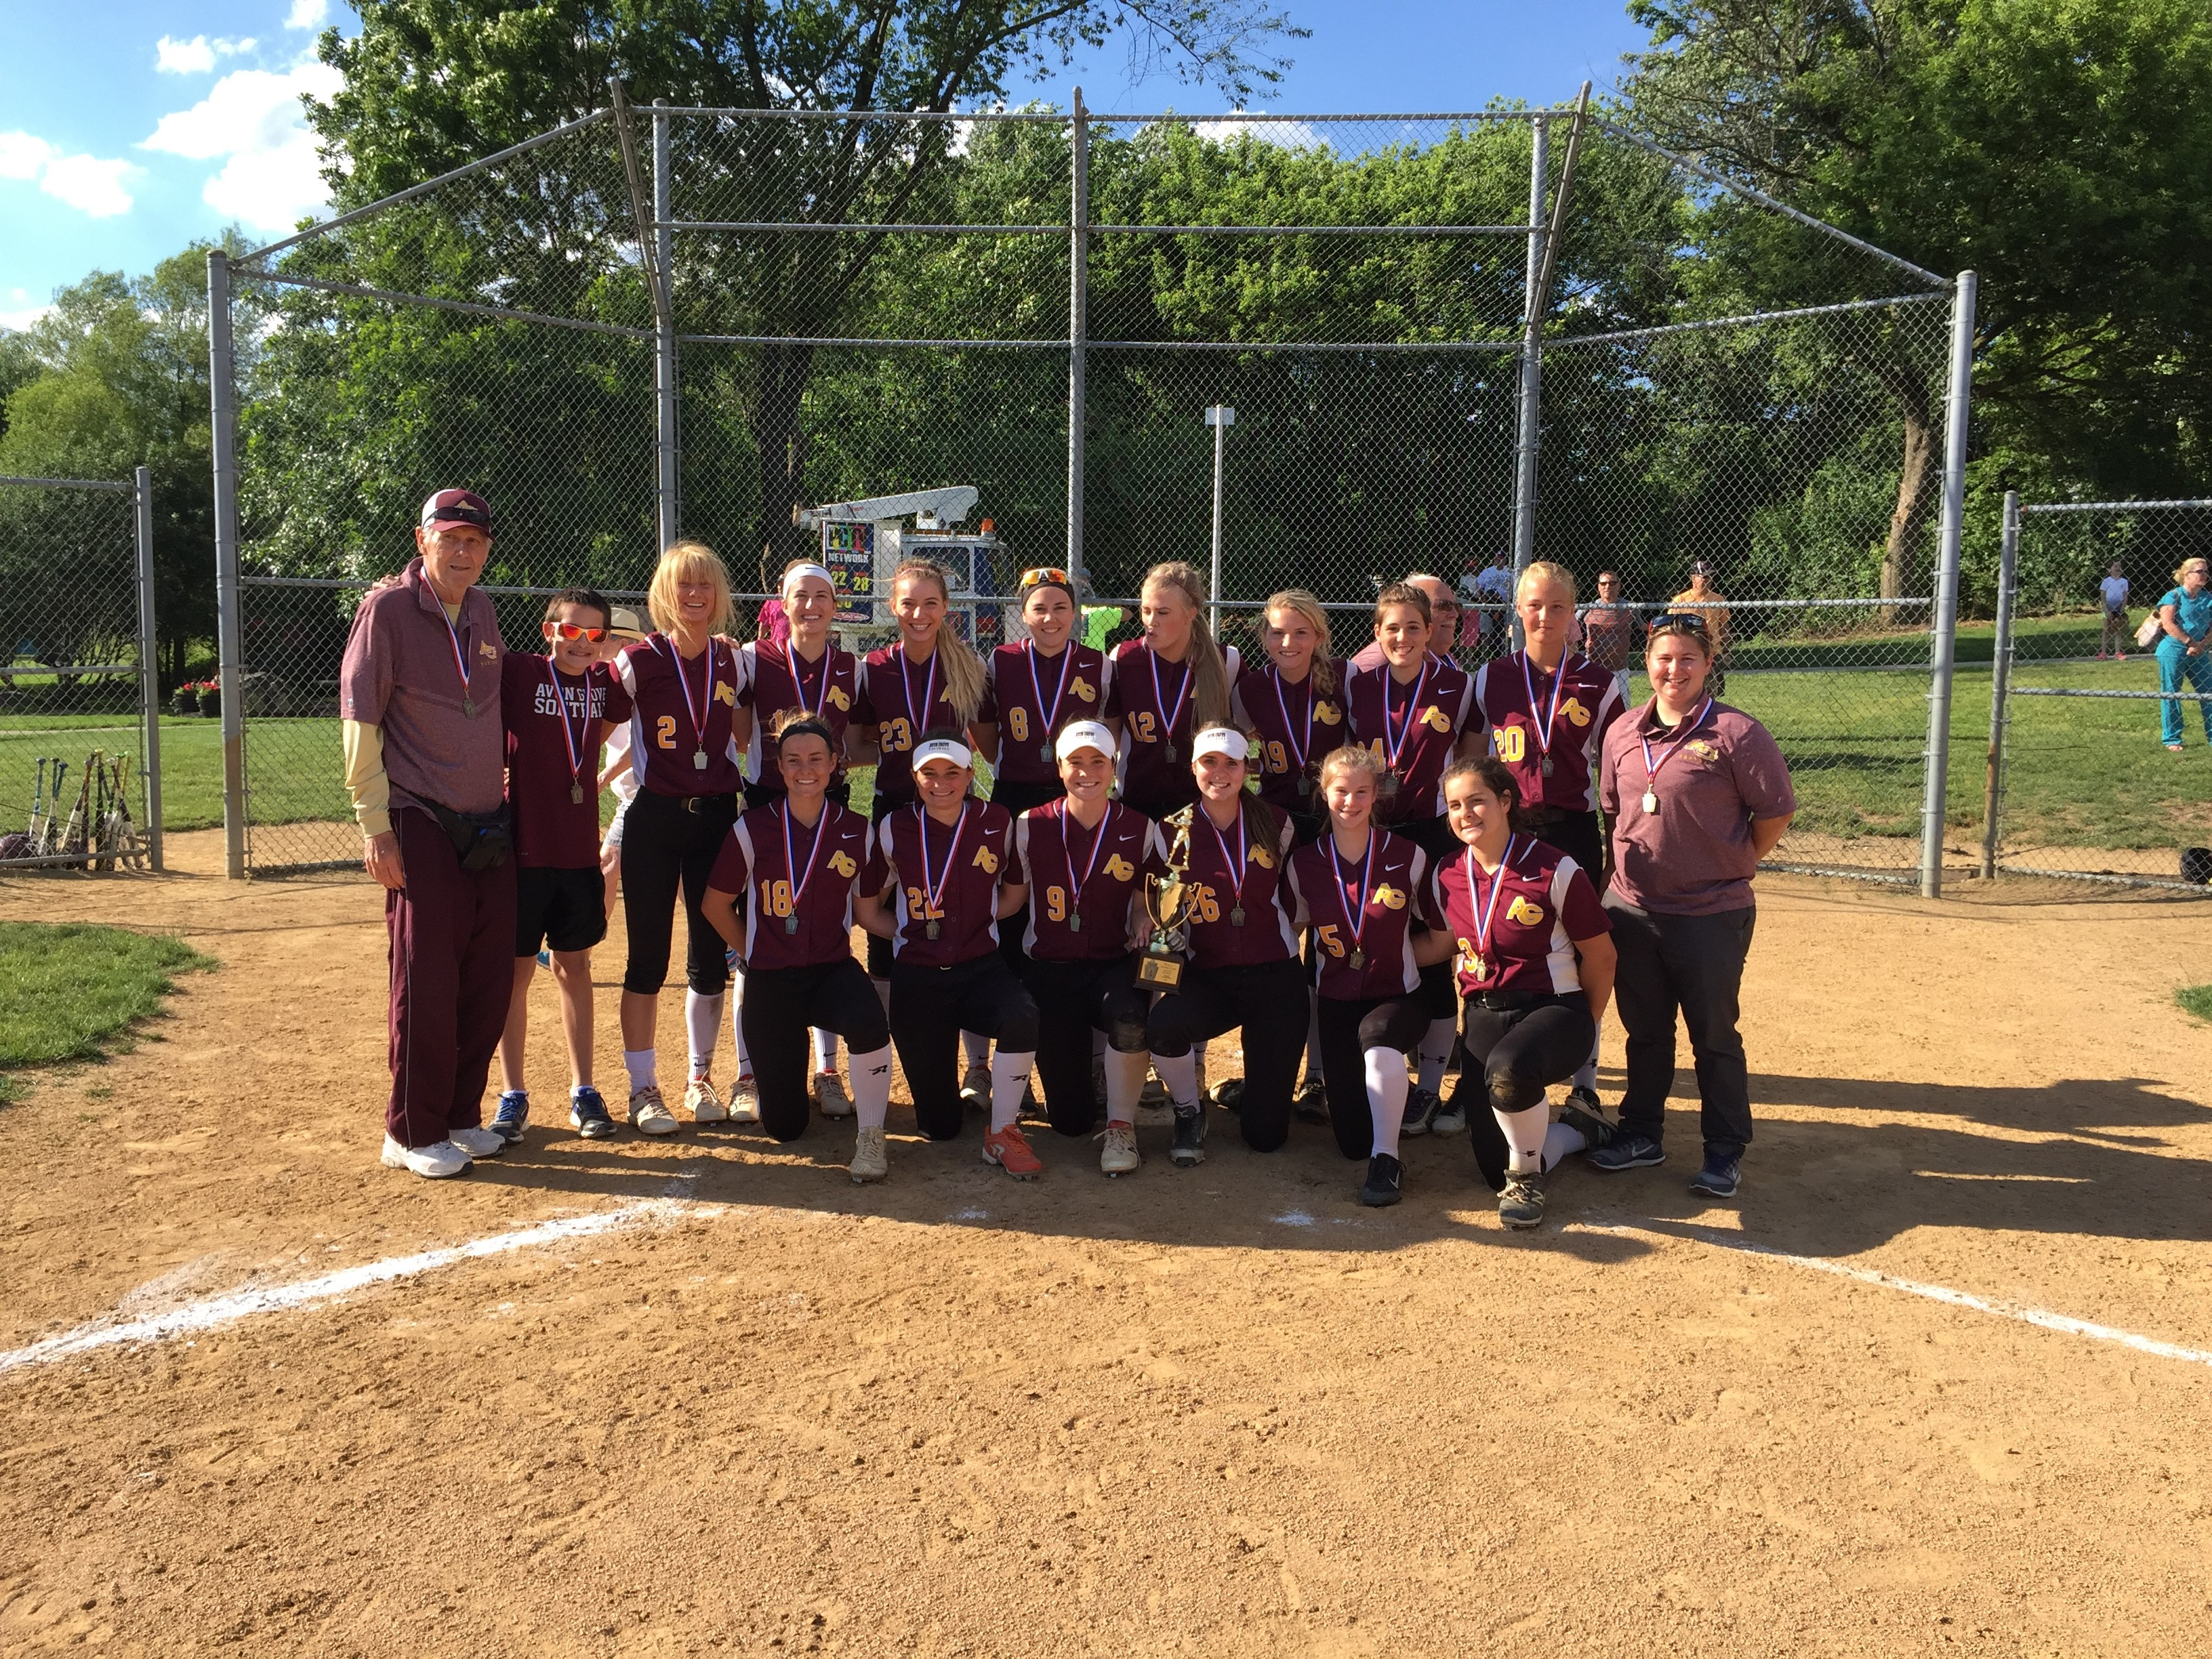 Softball District One Champs